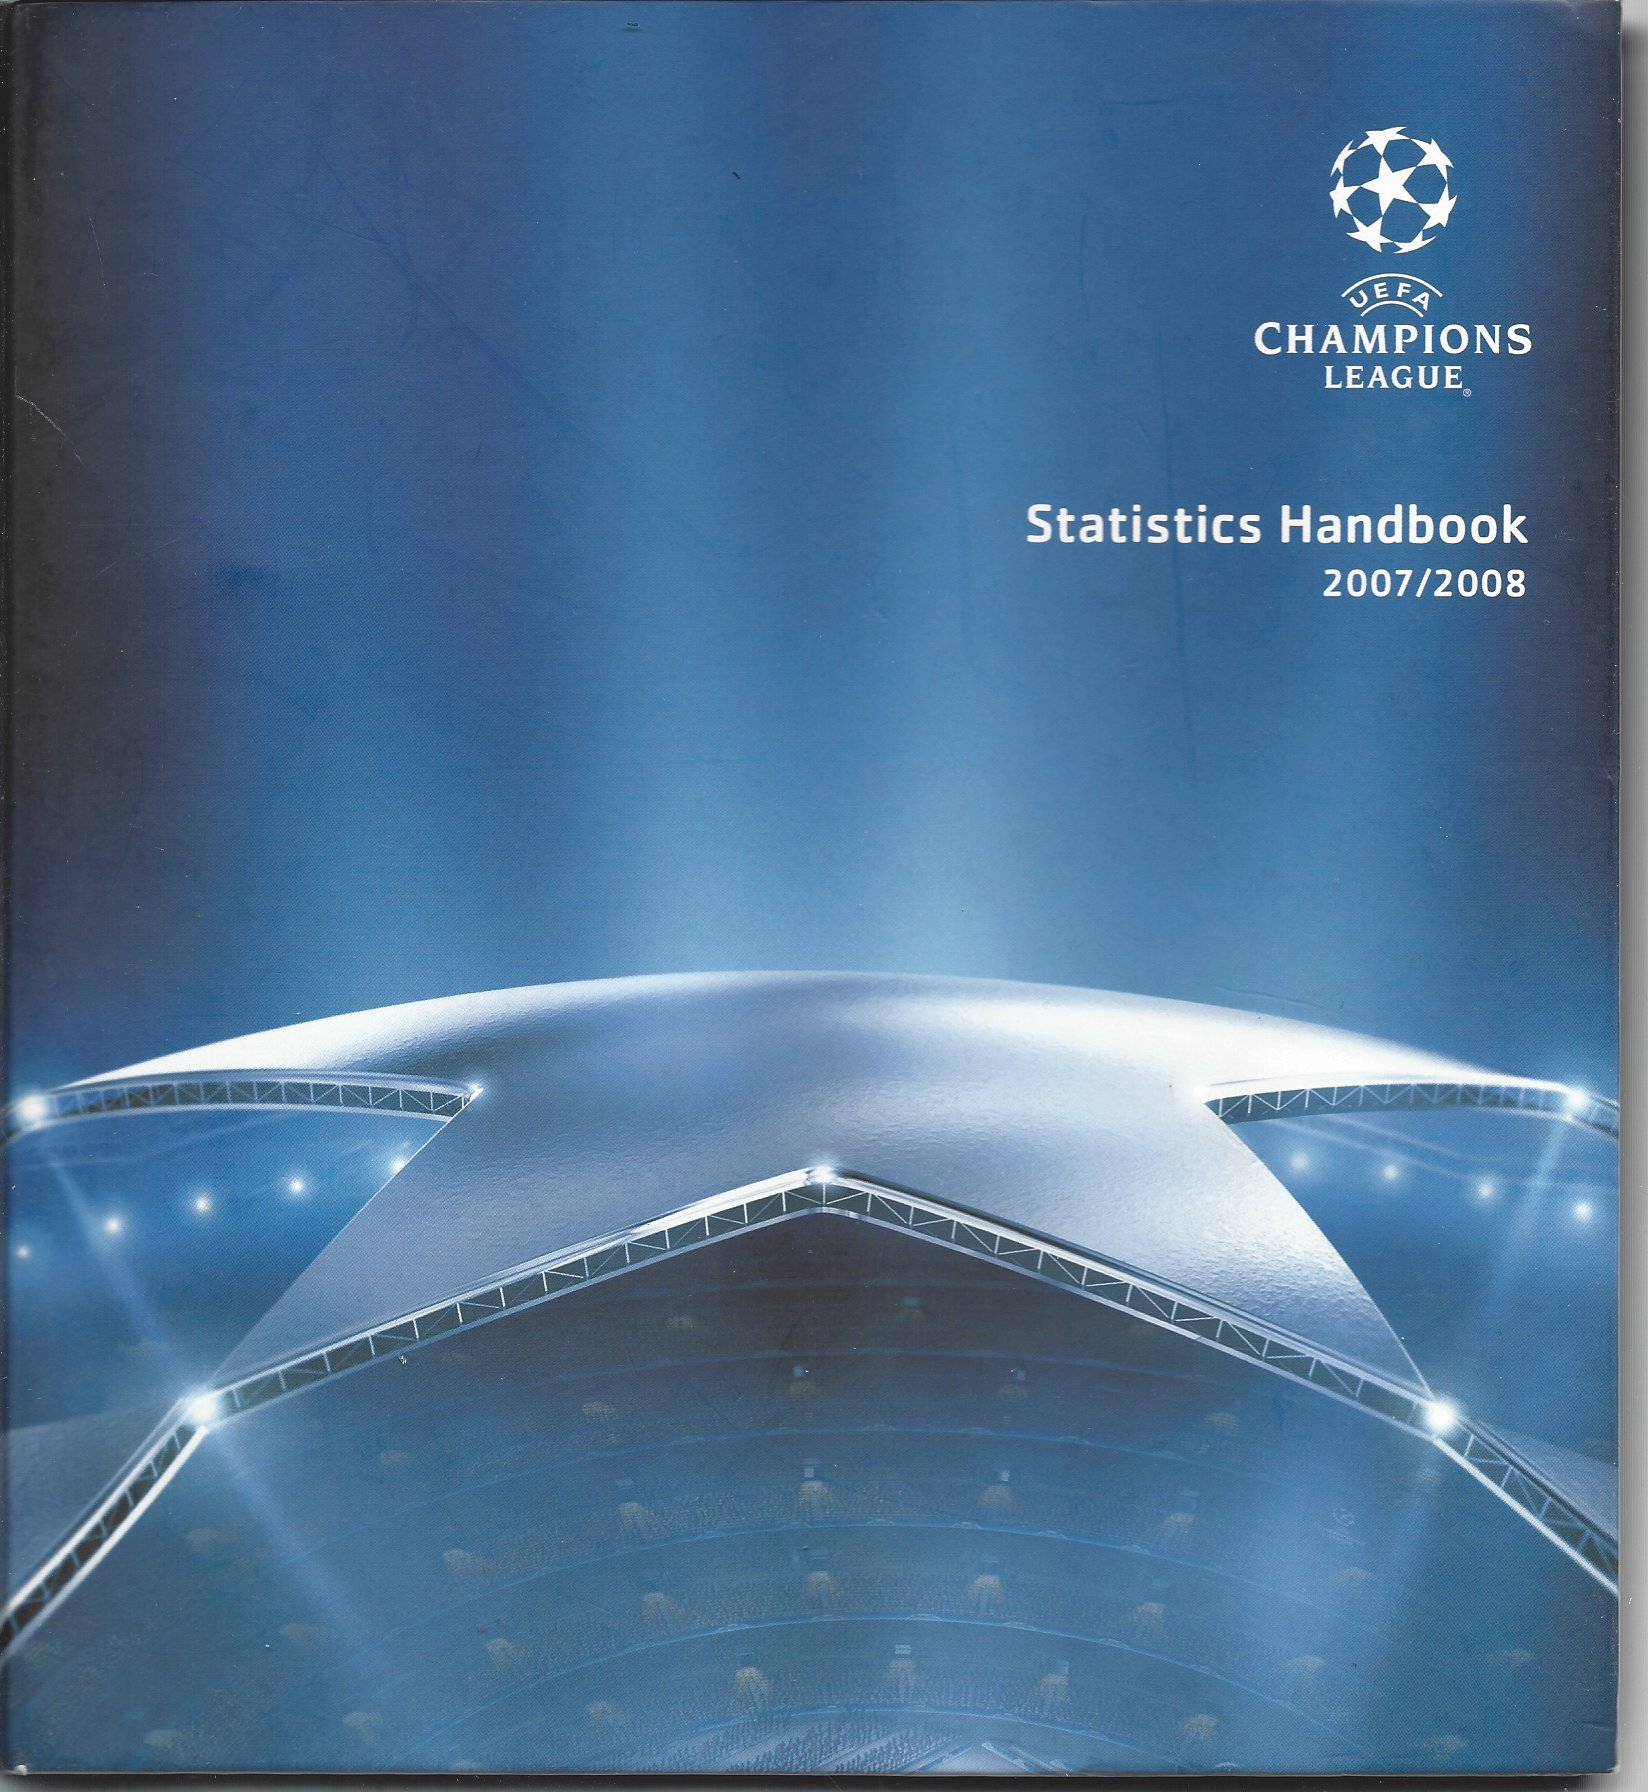 a handbook of statistics The handbook of key economic and financial statistics (the handbook) is a vital  statistical resource containing statistics from critical economic growth indicators.